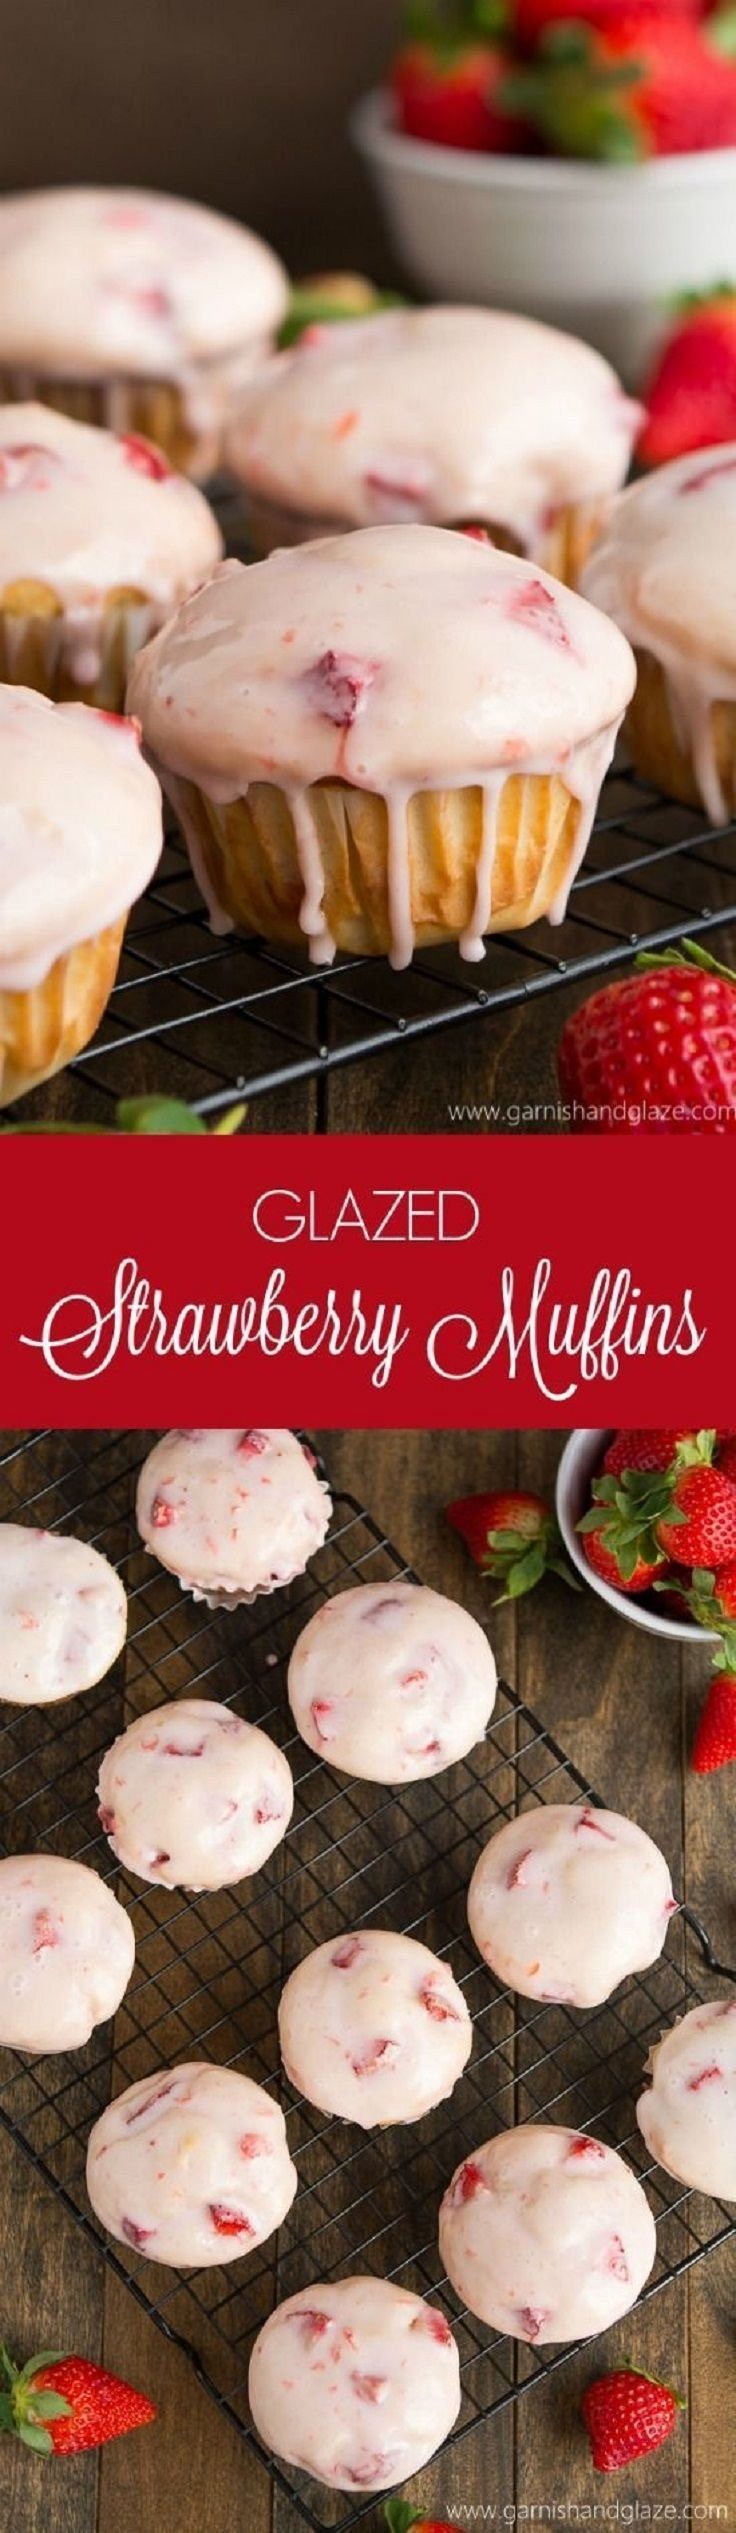 Glazed Strawberry Muffins - 16 Meaningful Mother's Day Brunch Ideas for a Wonderful Celebration